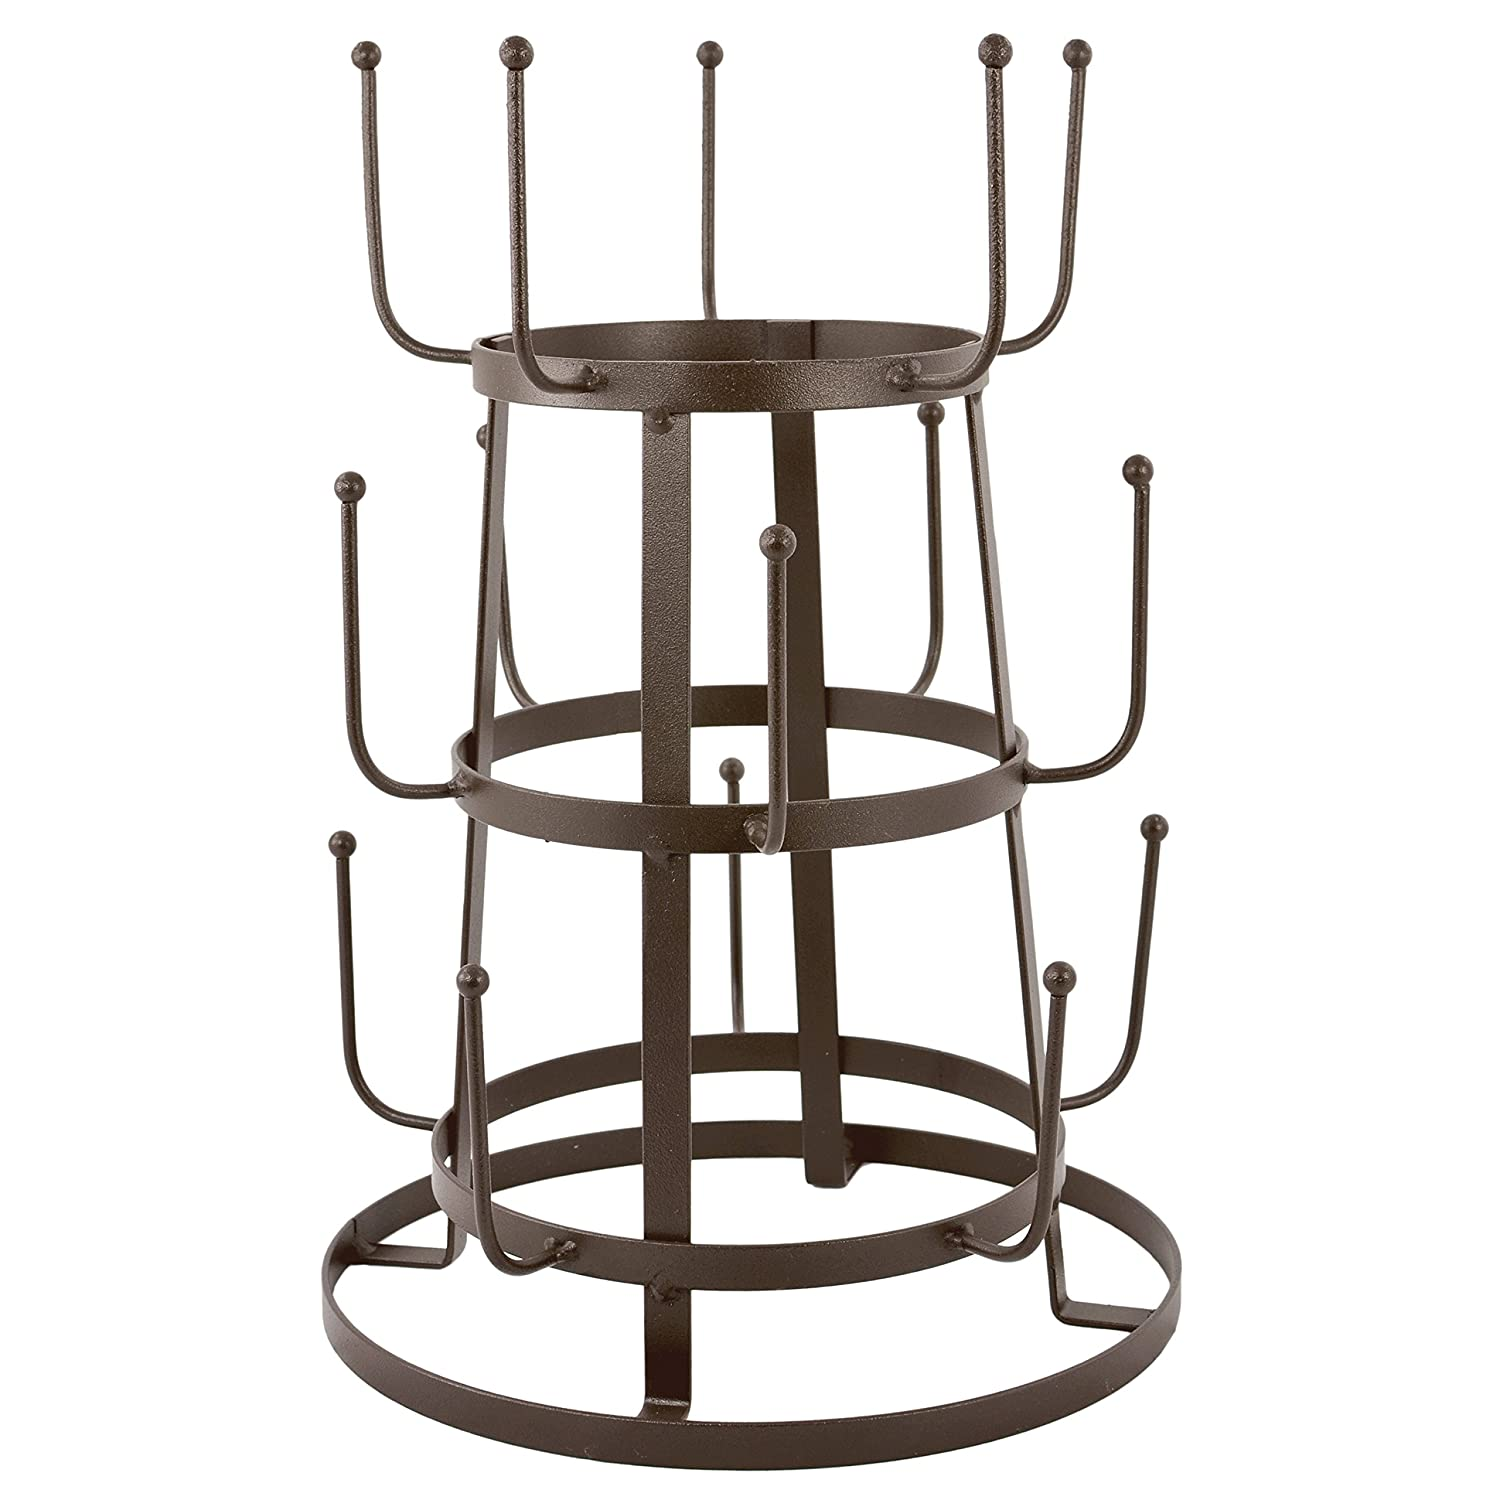 MyGift Vintage Rustic Brown Iron Mug / Cup / Glass Bottle Organizer Tree Drying Rack Stand MG-HLDR